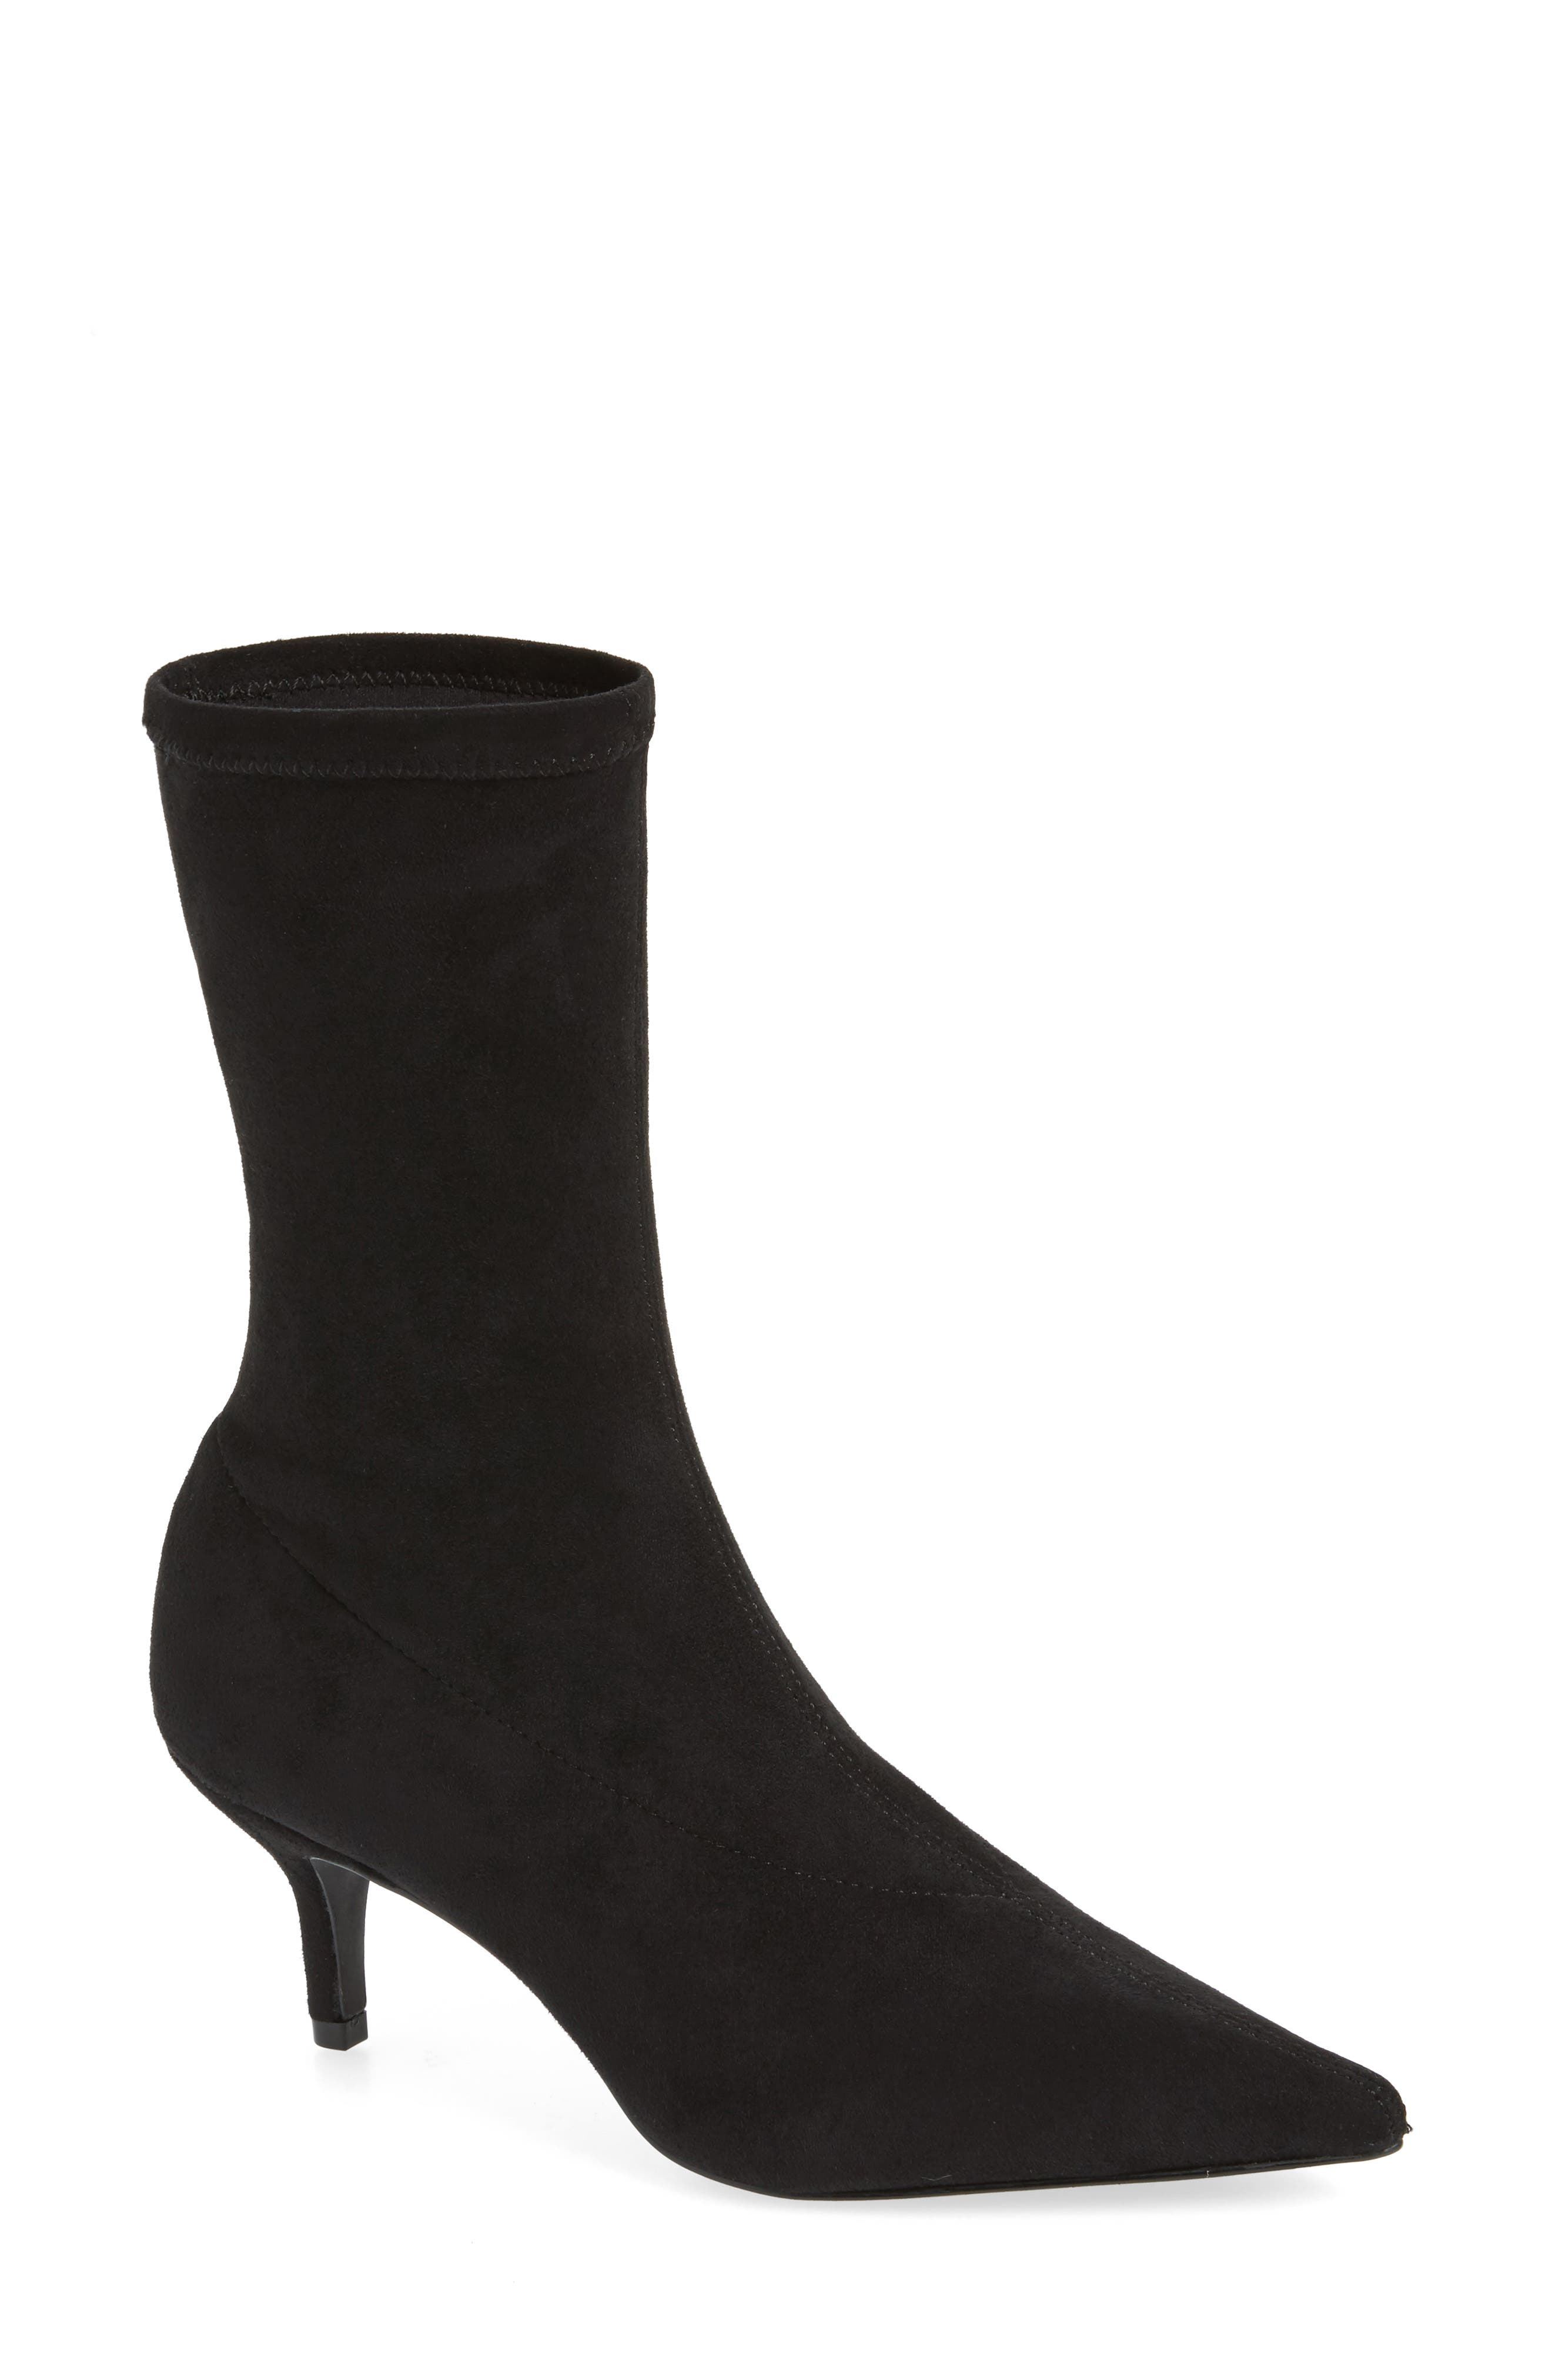 Ramone Floral Sock Bootie,                             Main thumbnail 1, color,                             001